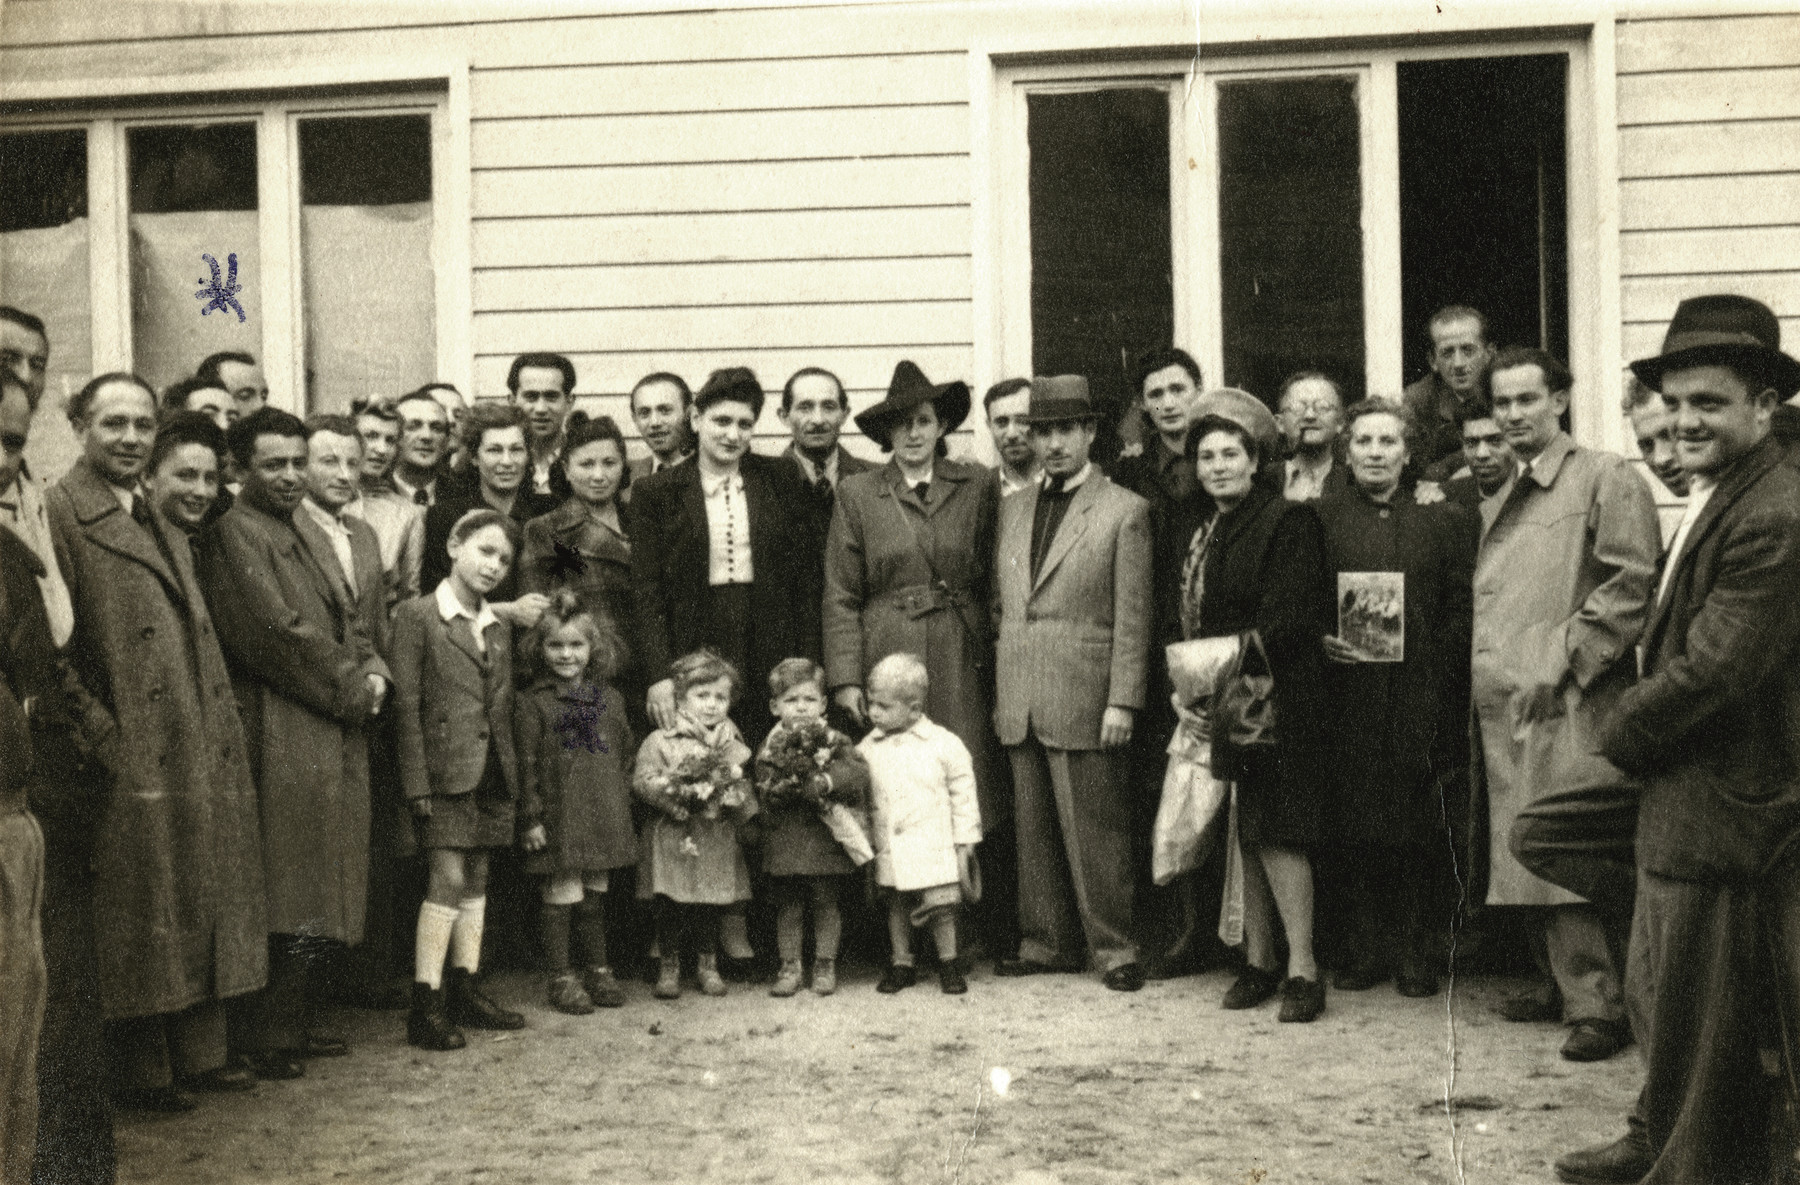 Group portrait of Jewish displaced persons in the  Schlachtensee camp.   Mosche Finkelstein is on the far left, last row. He is standing by the window and only half of his head is visible. His daughter, Clara, is the second child on the left, in the front row.